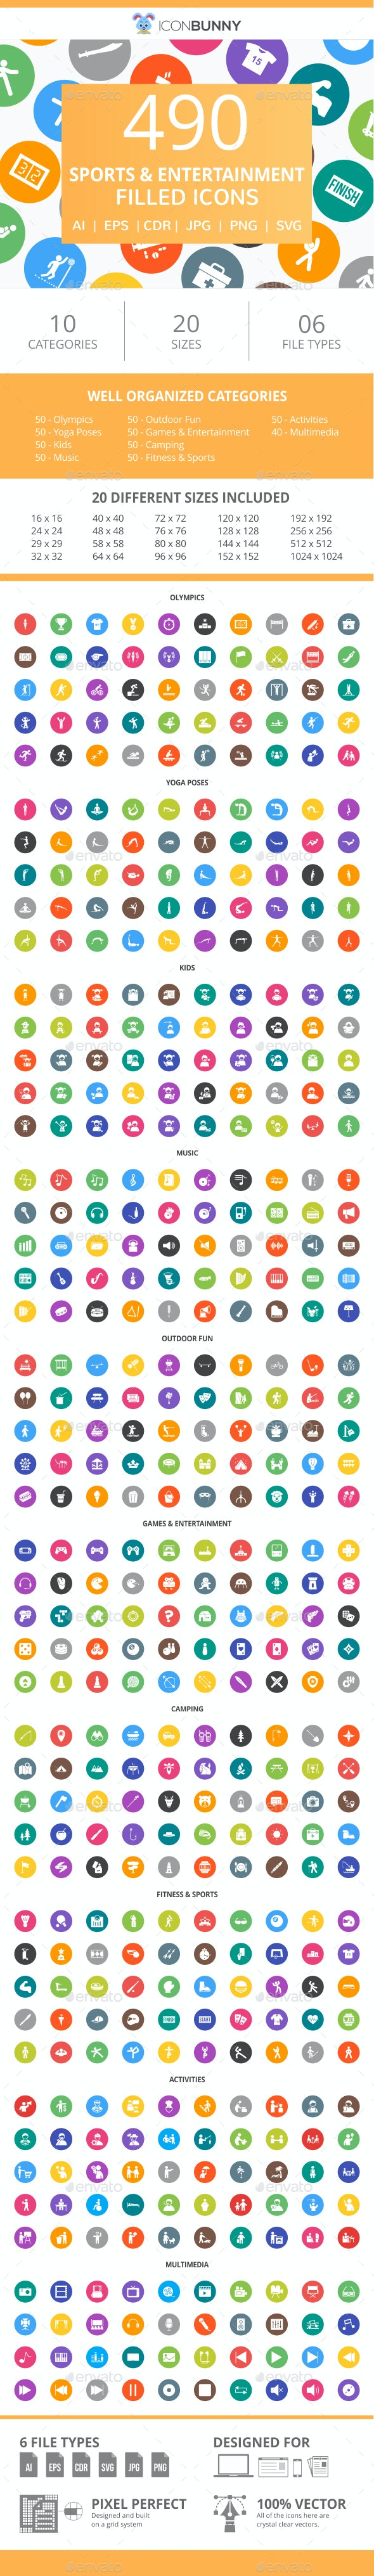 490 Sports & Entertainment Filled Round Icons - Icons